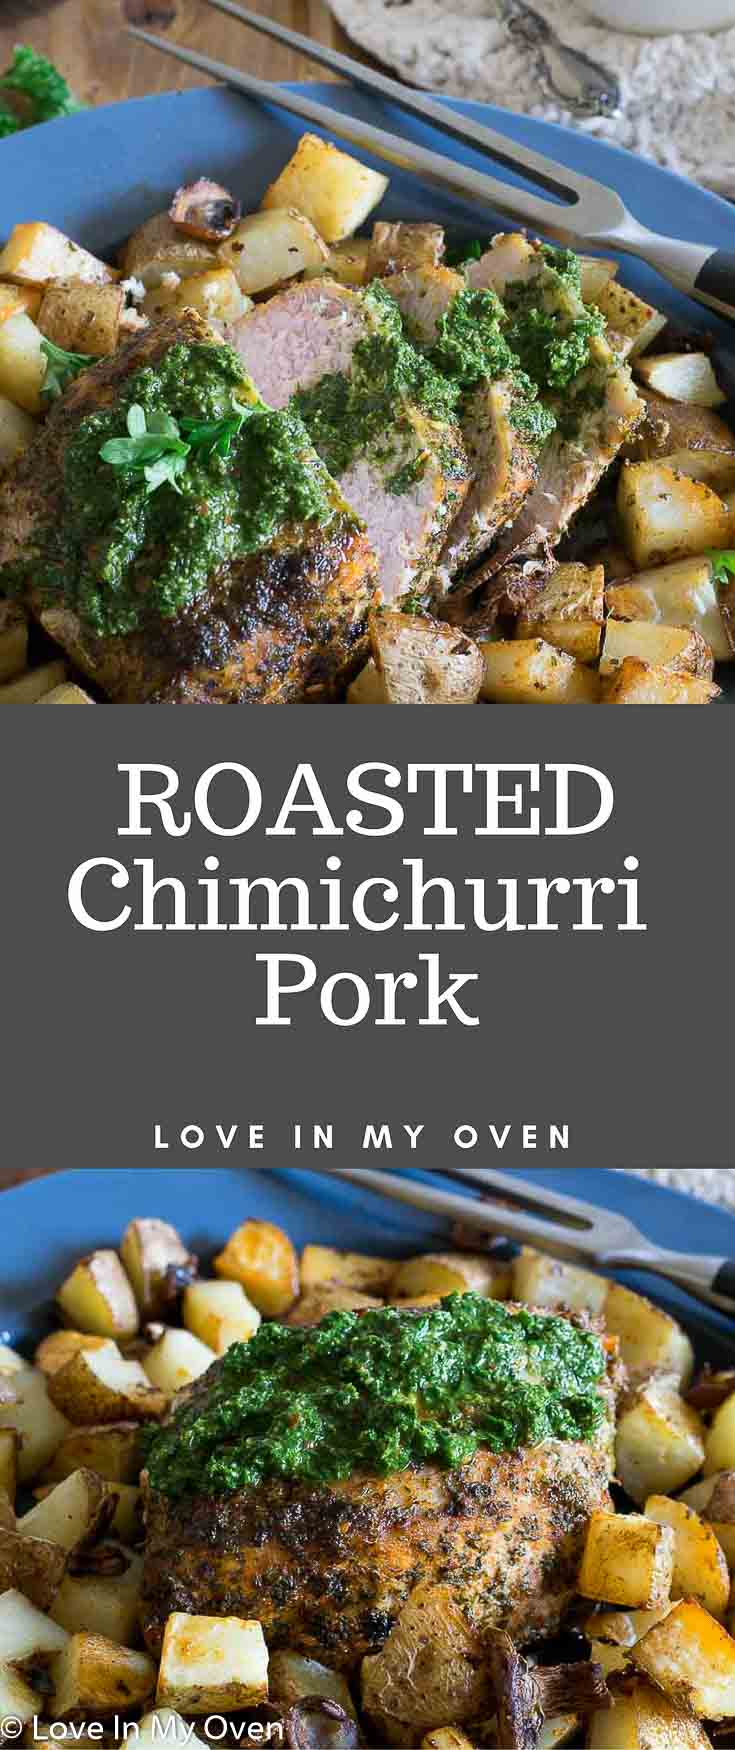 A brightly coloured chimichurri sauce with flavours of garlic and herb makes the perfect accompaniment to roasted pork with potatoes and mushrooms!